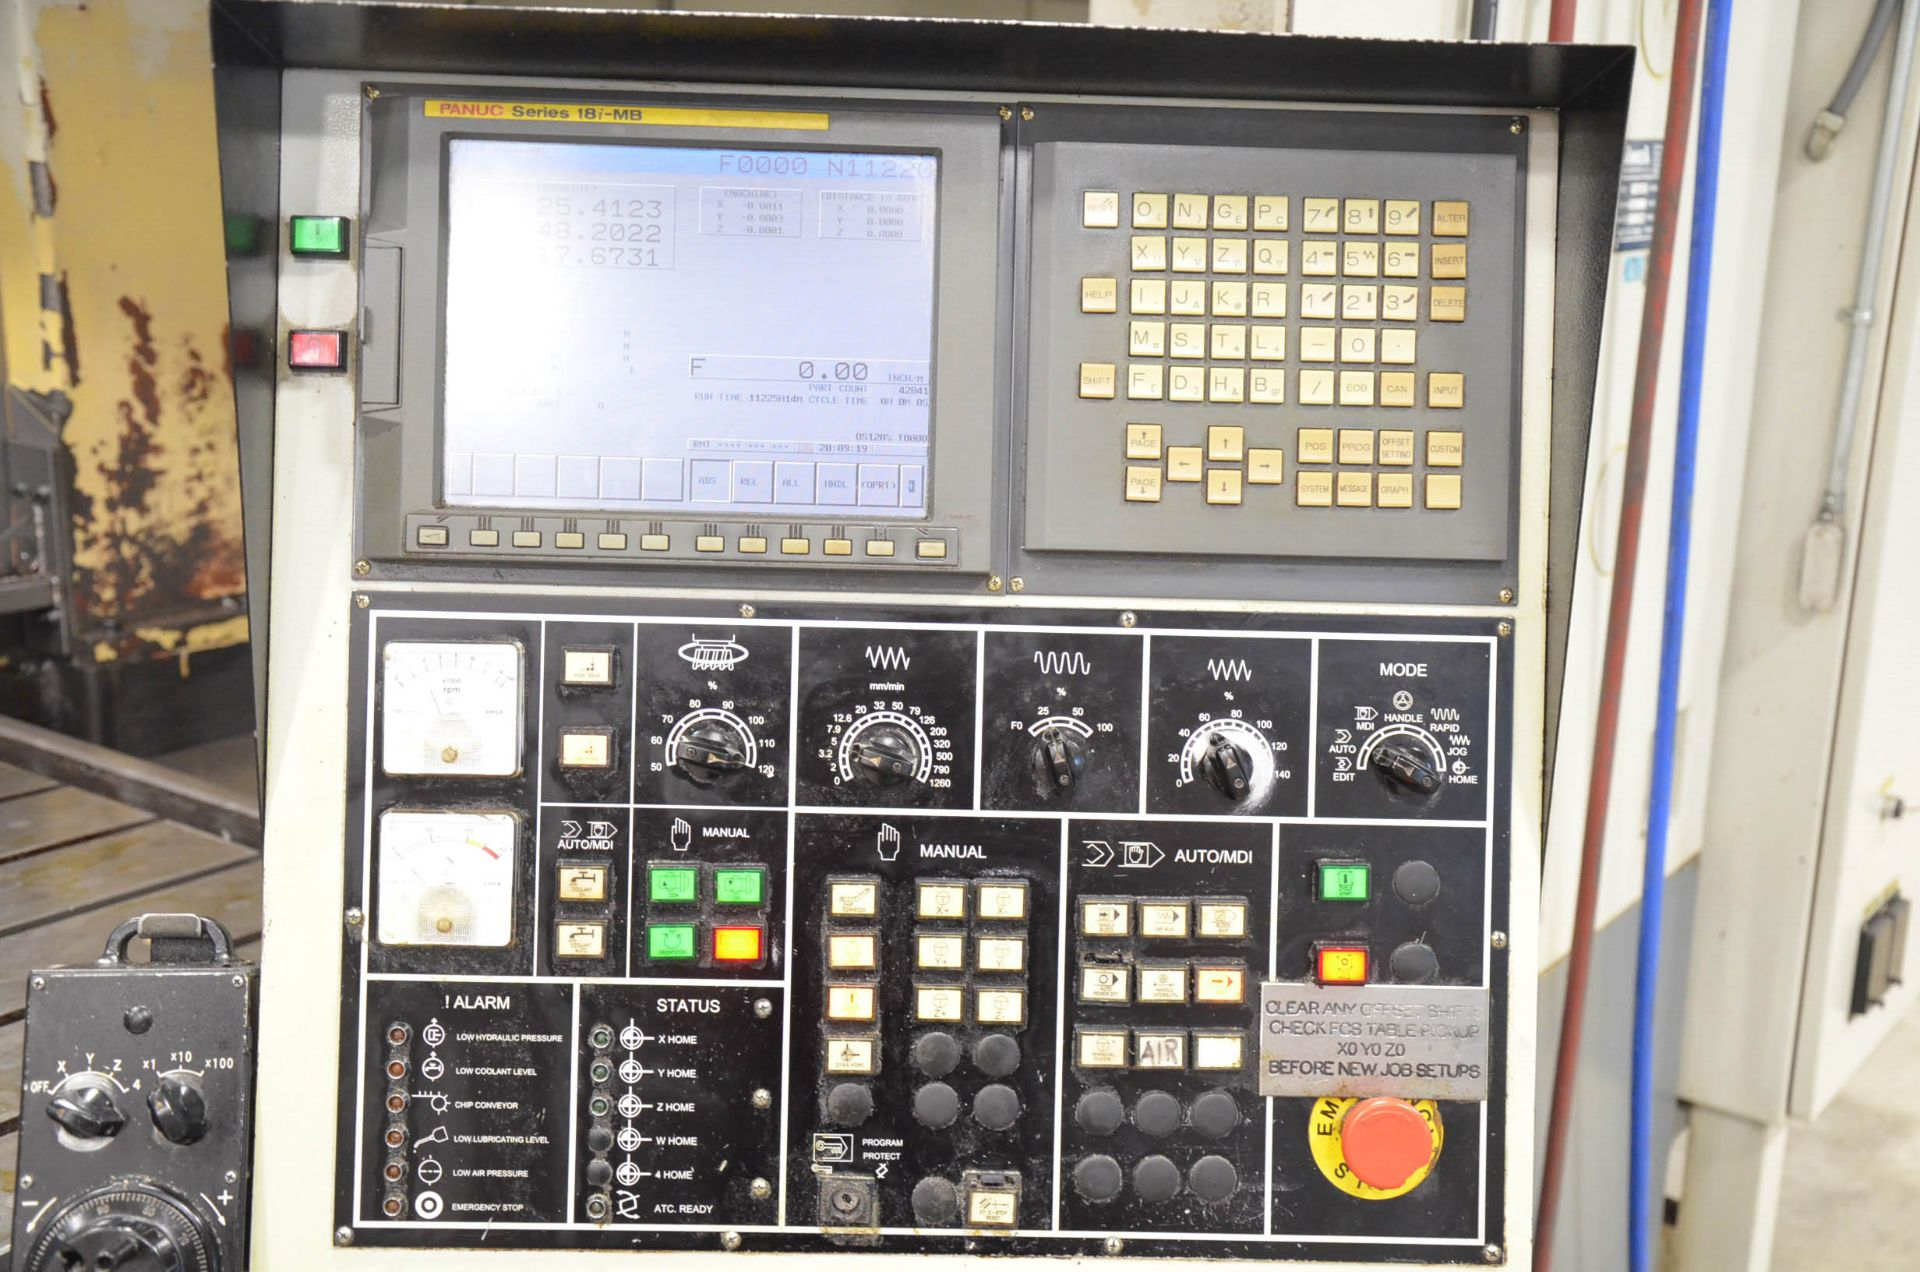 AWEA (2005) SP3016HSS GANTRY-TYPE CNC VERTICAL MACHINING CENTER WITH FANUC SERIES 18I-MB CNC - Image 11 of 12